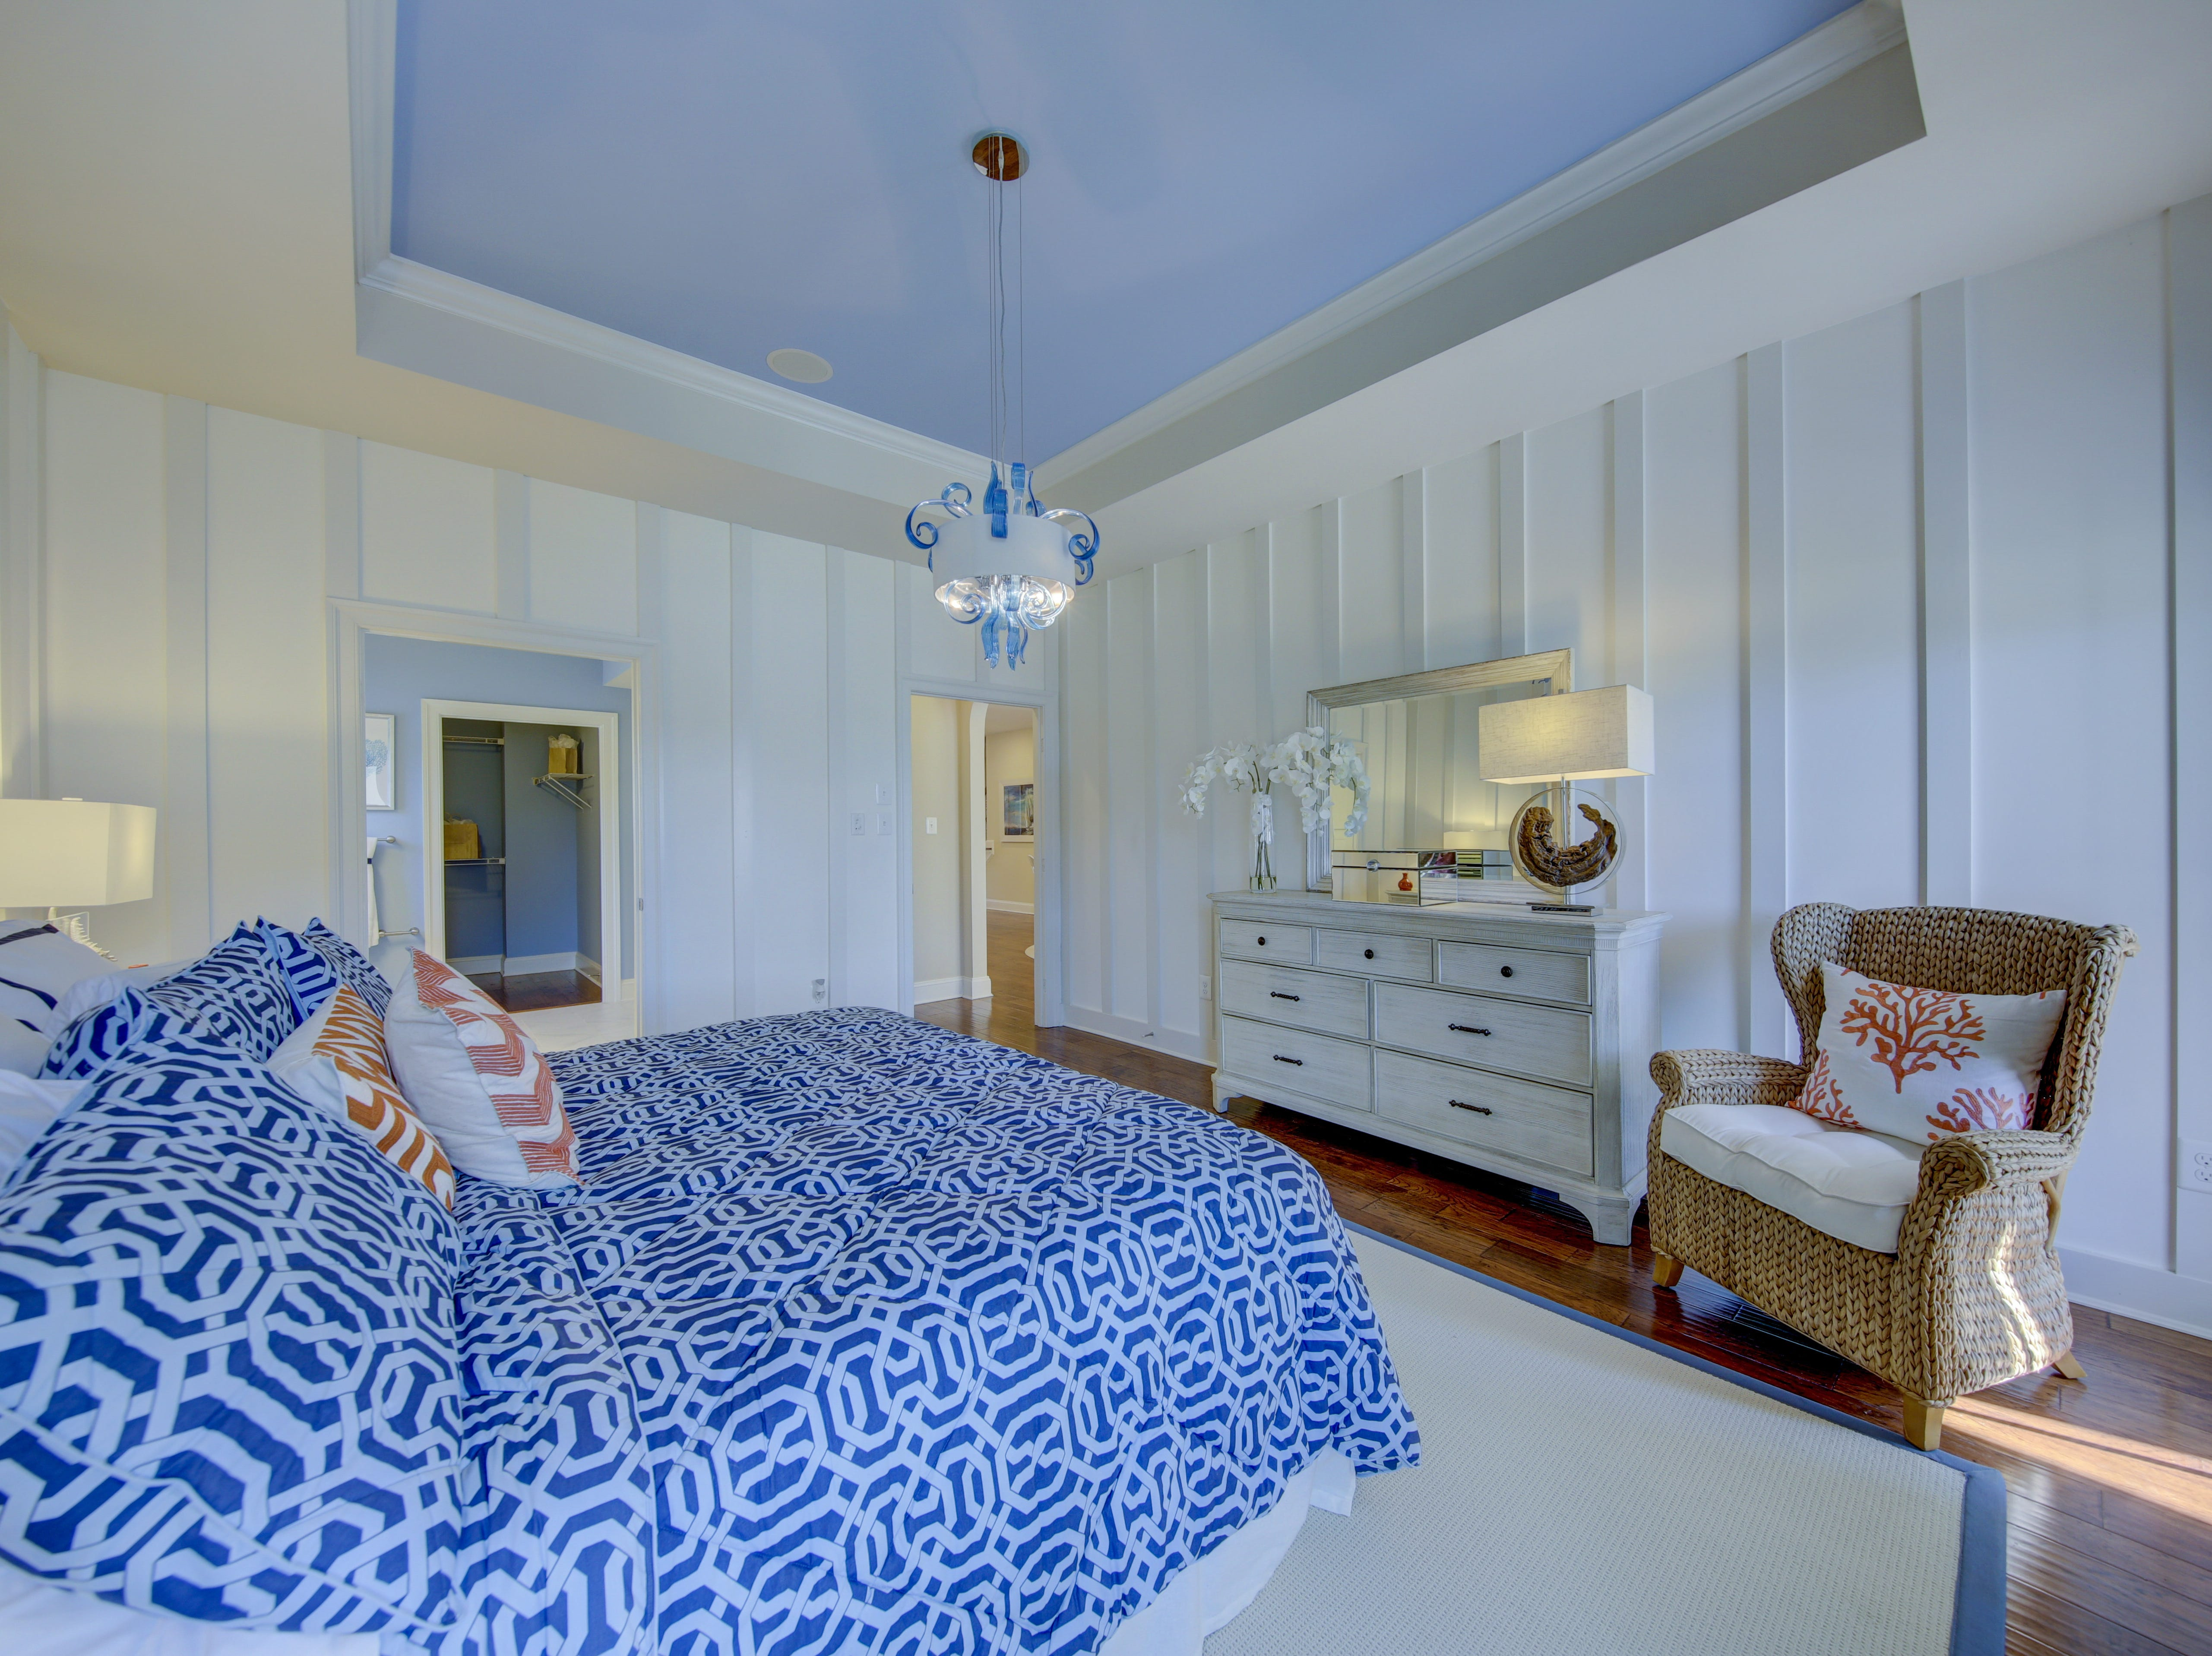 The first-floor master bedroom has a tray ceiling and custom moldings on the walls.